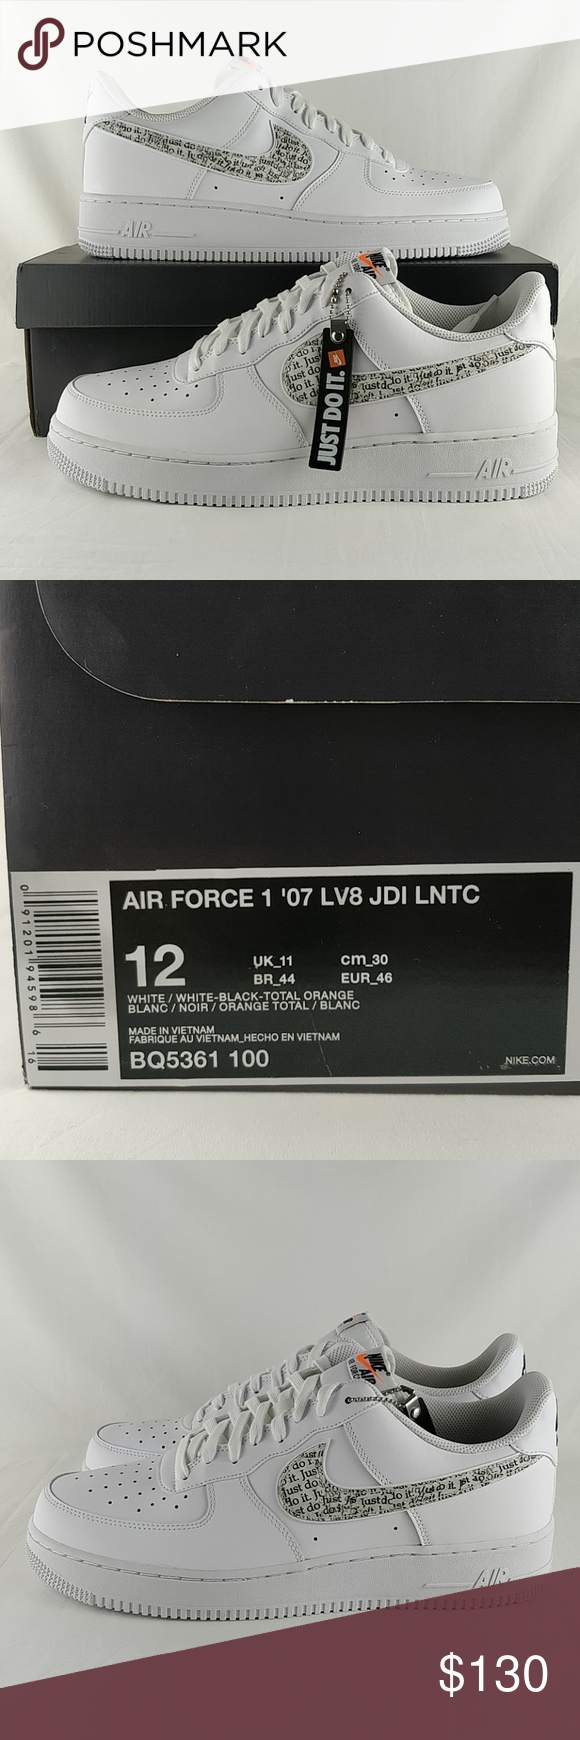 Nike Air Force I 1 07 Lv8 Jdi Lntc Bq5361 100 Nike Air Force I 07 Lv8 Jdi Lntc Just Do It Men S Size 12 Brand New In Nike Dress Shoes Men Nike Air Force